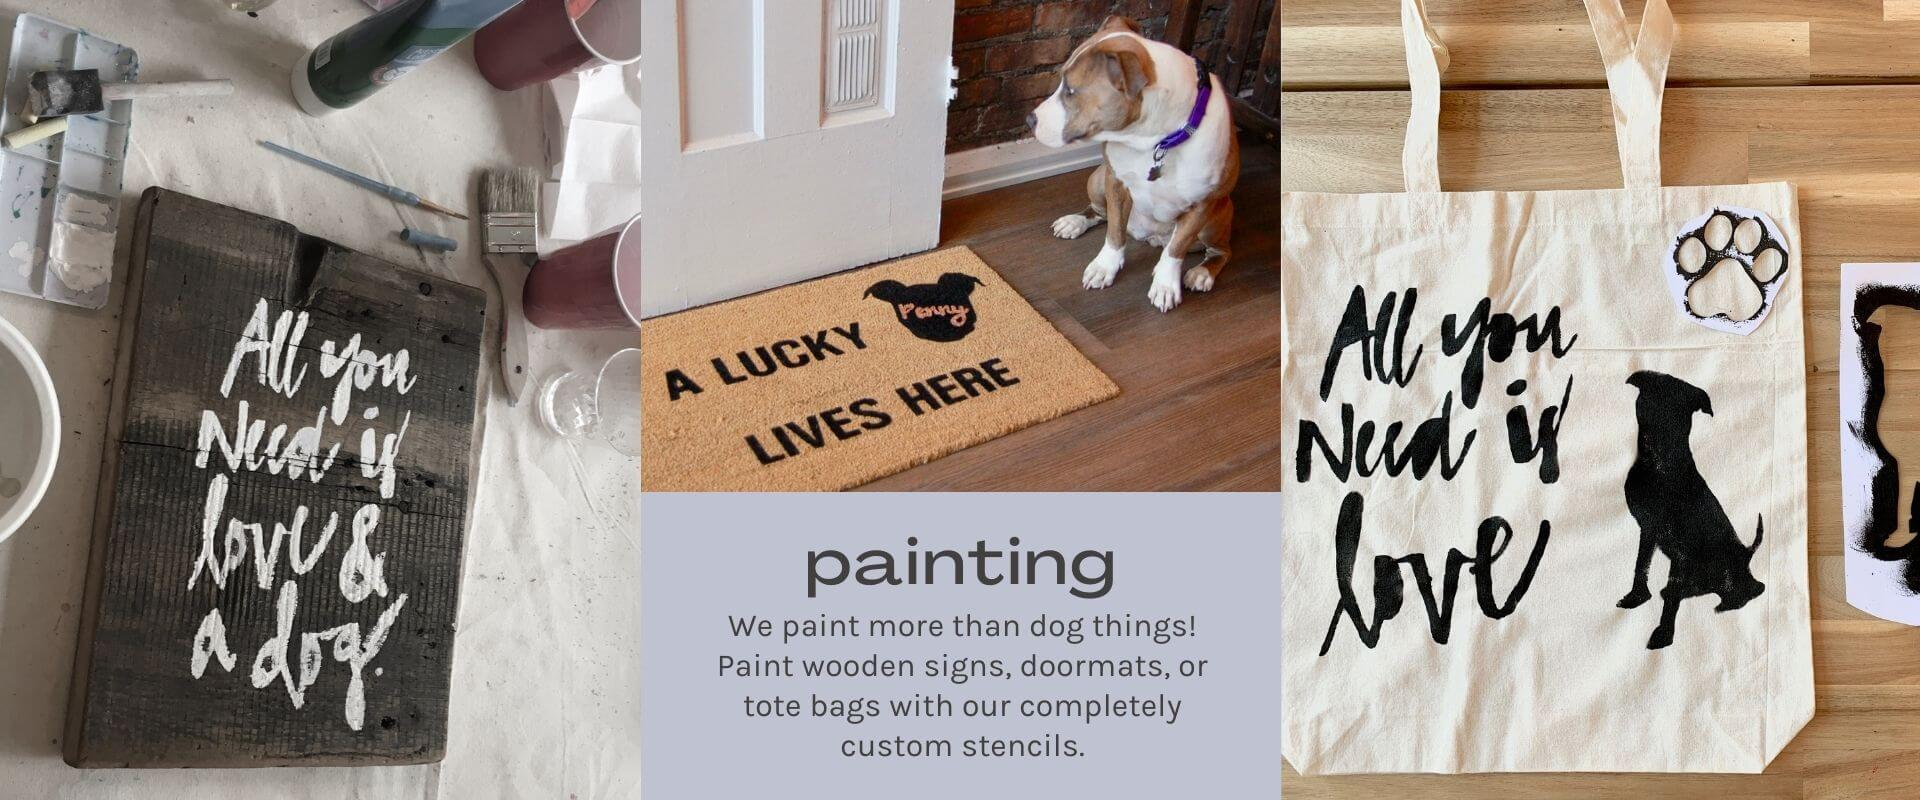 text- painting image- wooden sign, doormat and dog, tote bag and dog outline